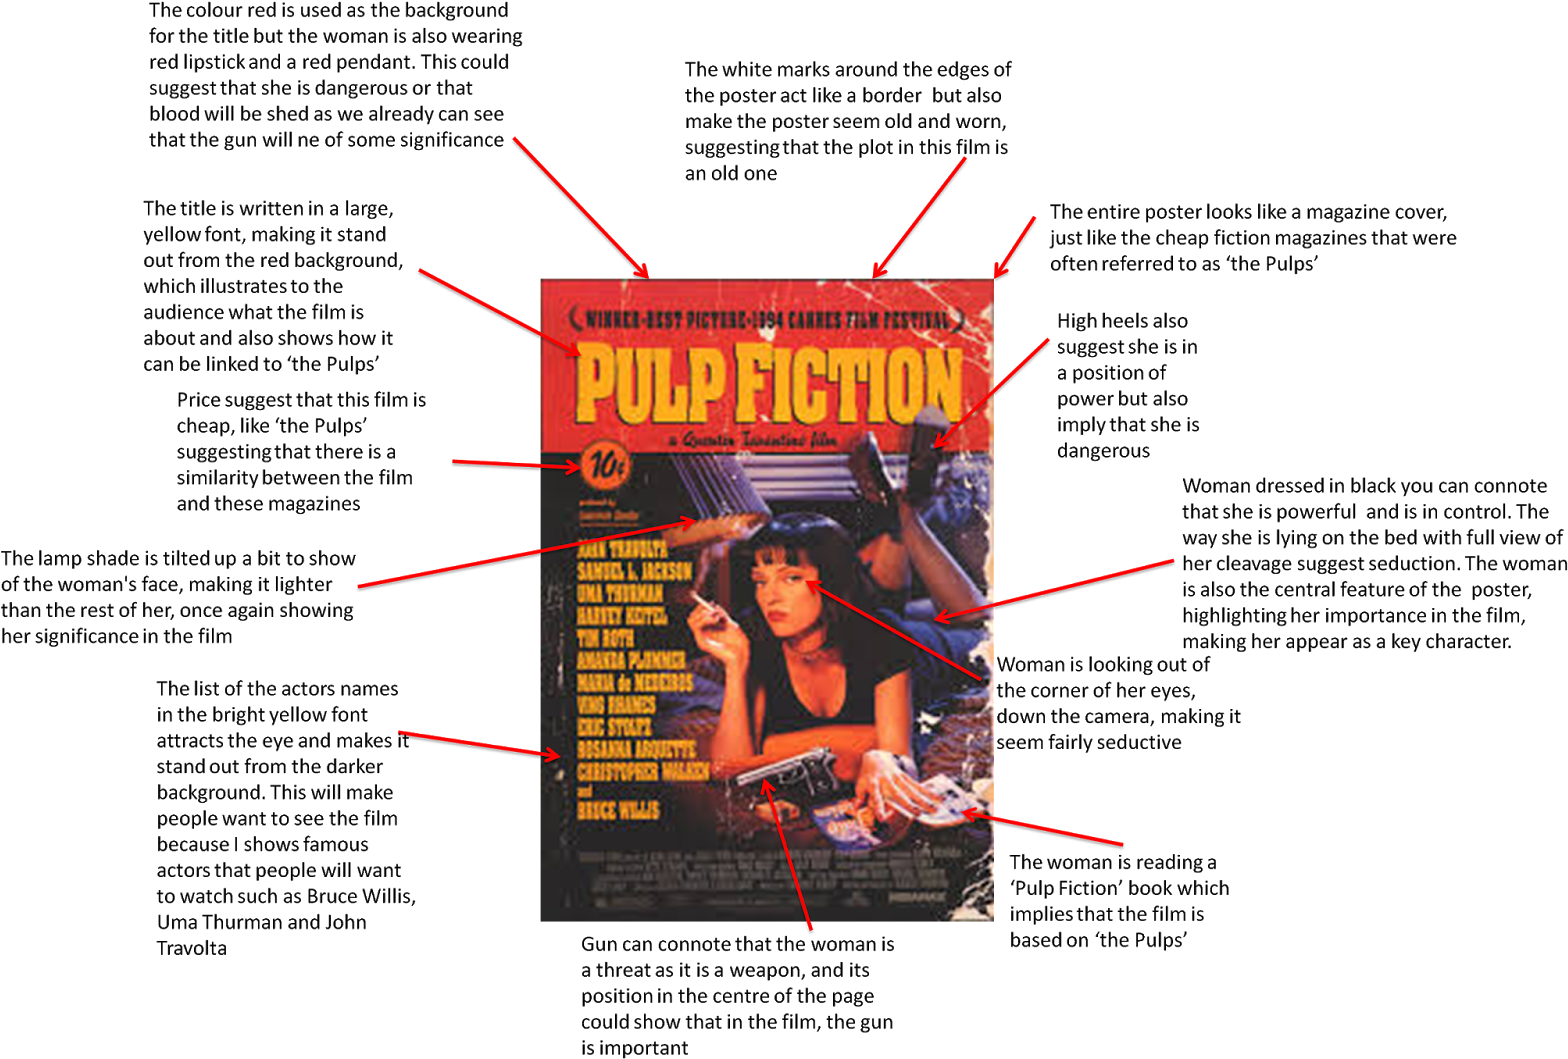 Download HD Pulp Fiction   Poster Analysis   Pulp Fiction Movie ...